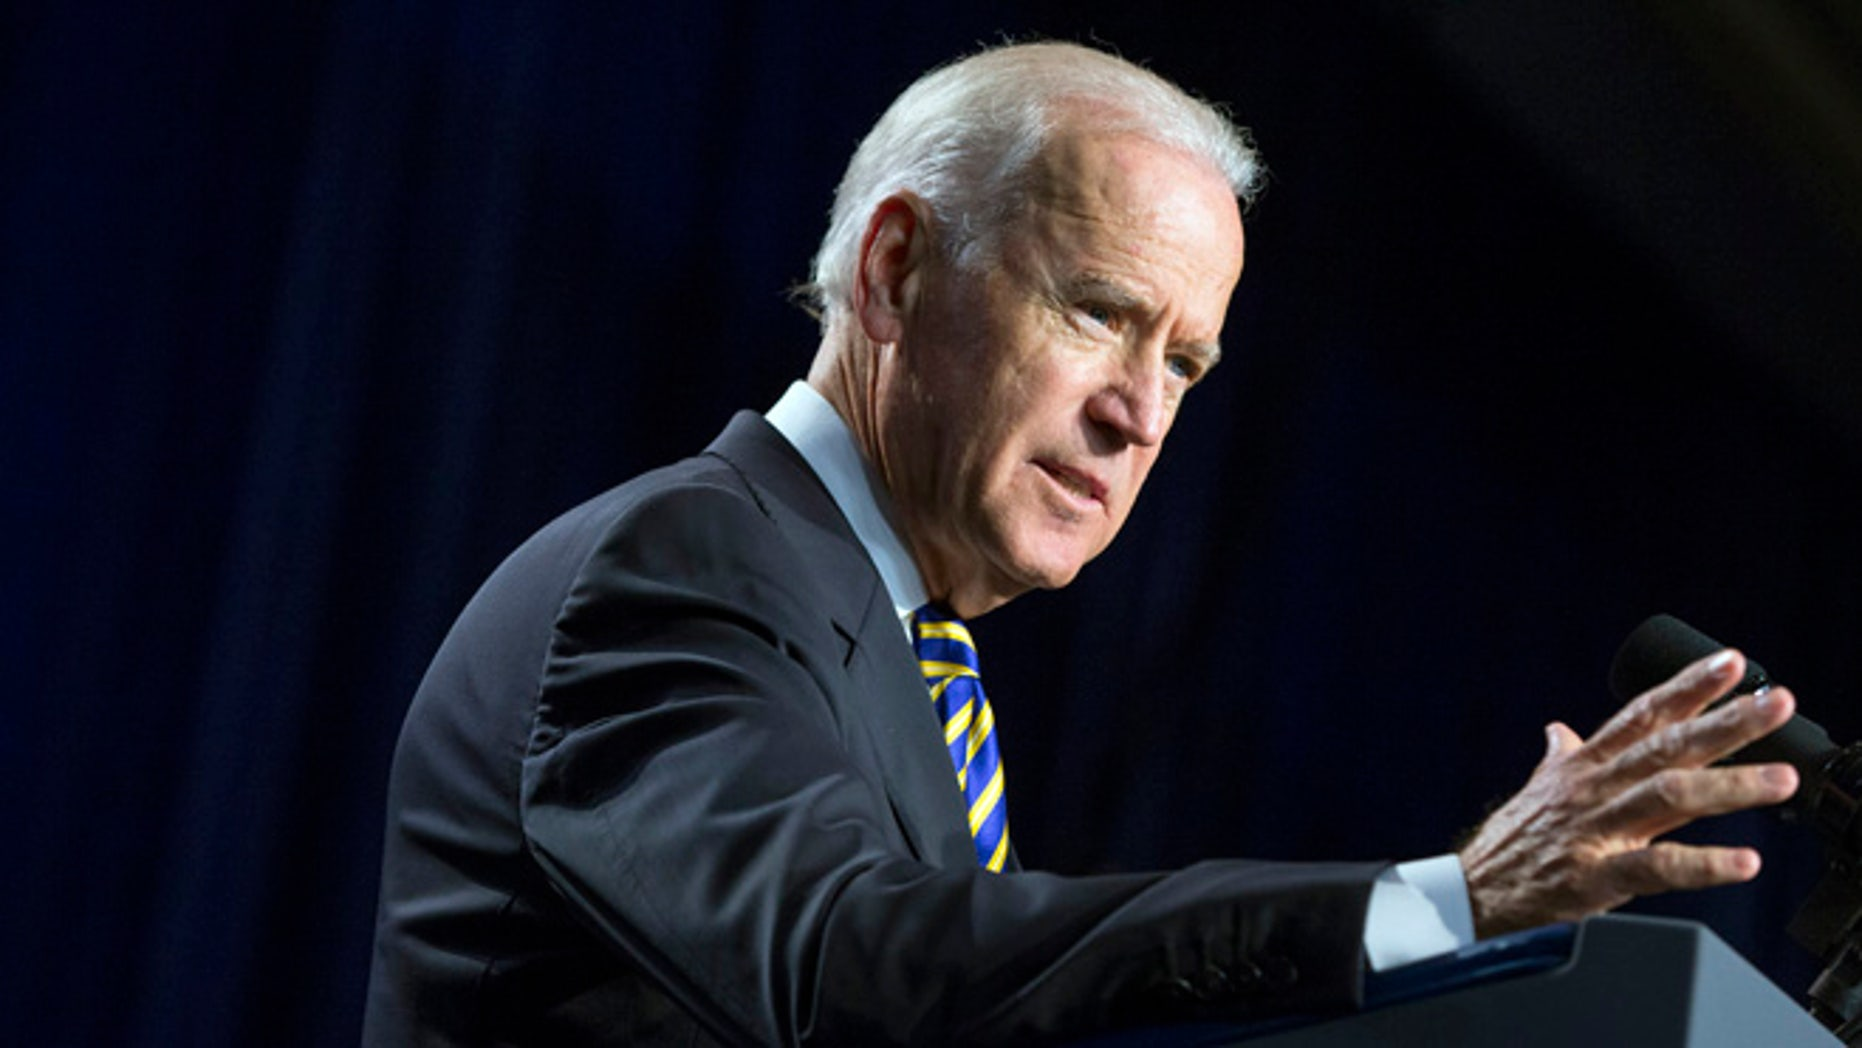 Vice President Joe Biden gestures during a speech to mark the 40th anniversary of the Legal Services Corporation, on Tuesday, Sept. 16, 2014, in Washington. (AP Photo/Evan Vucci)